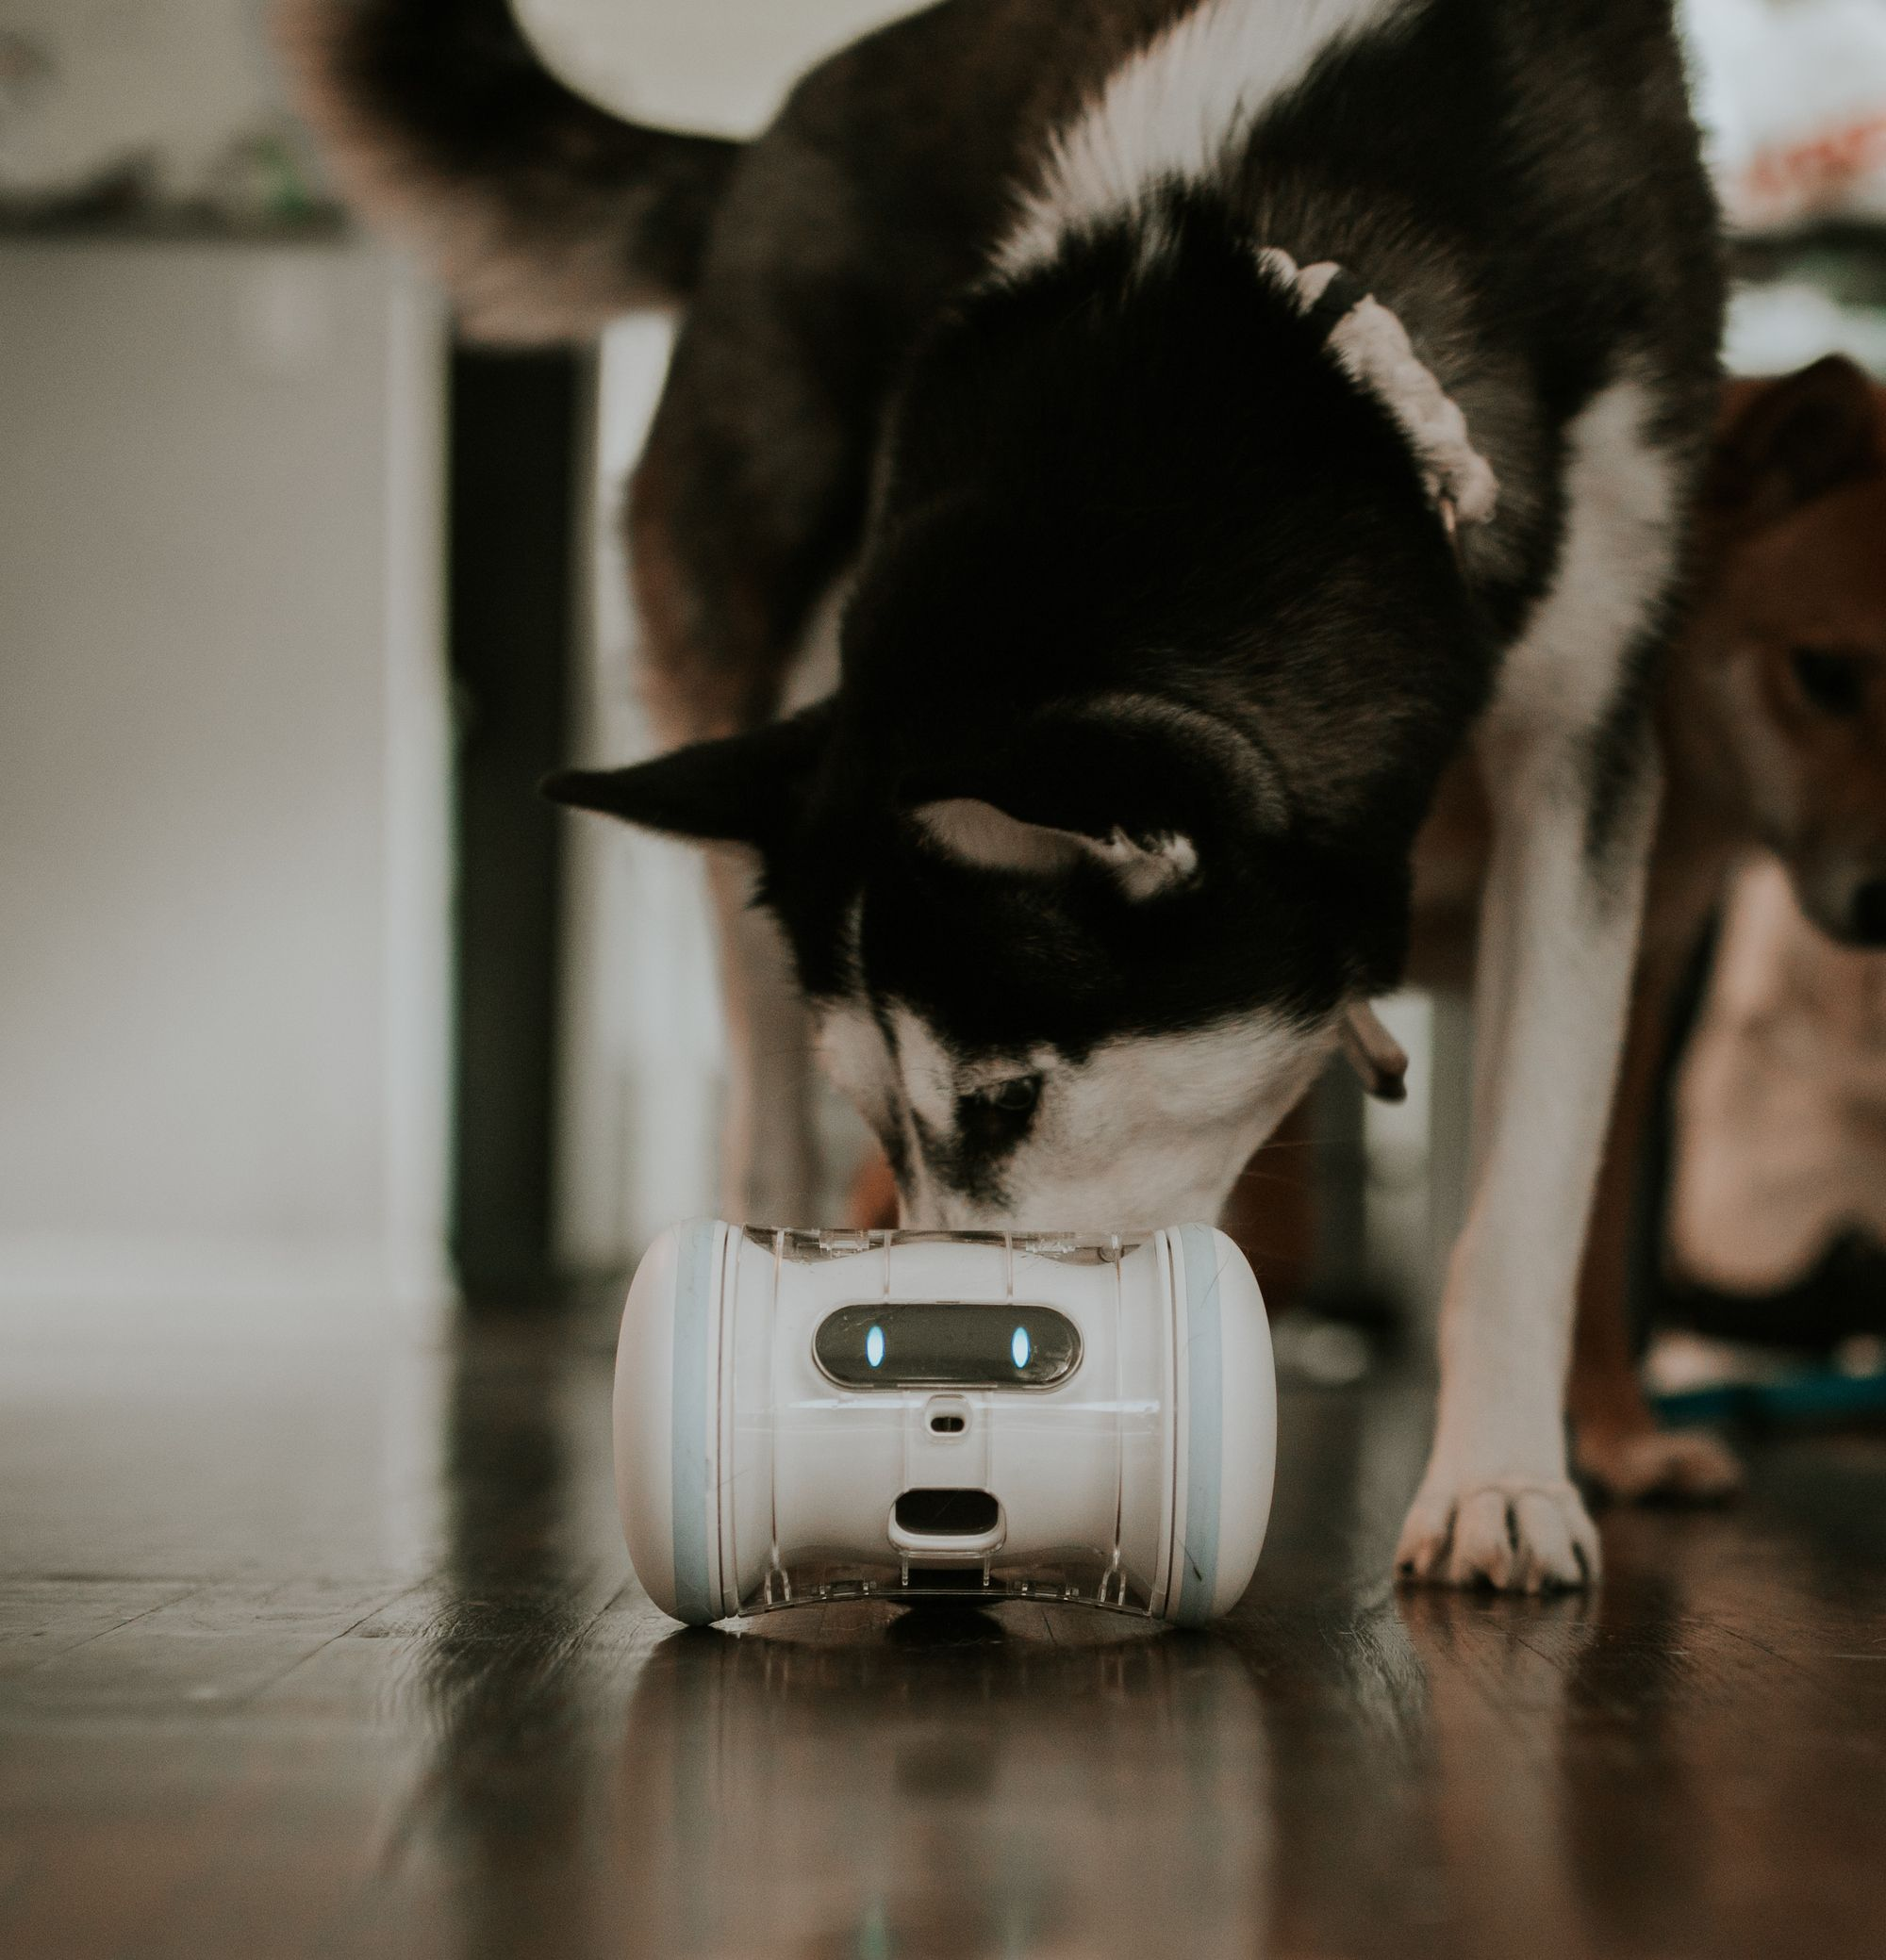 Pin By Varram On Varram Pet Fitness Robot Pets Players Mp3 Player